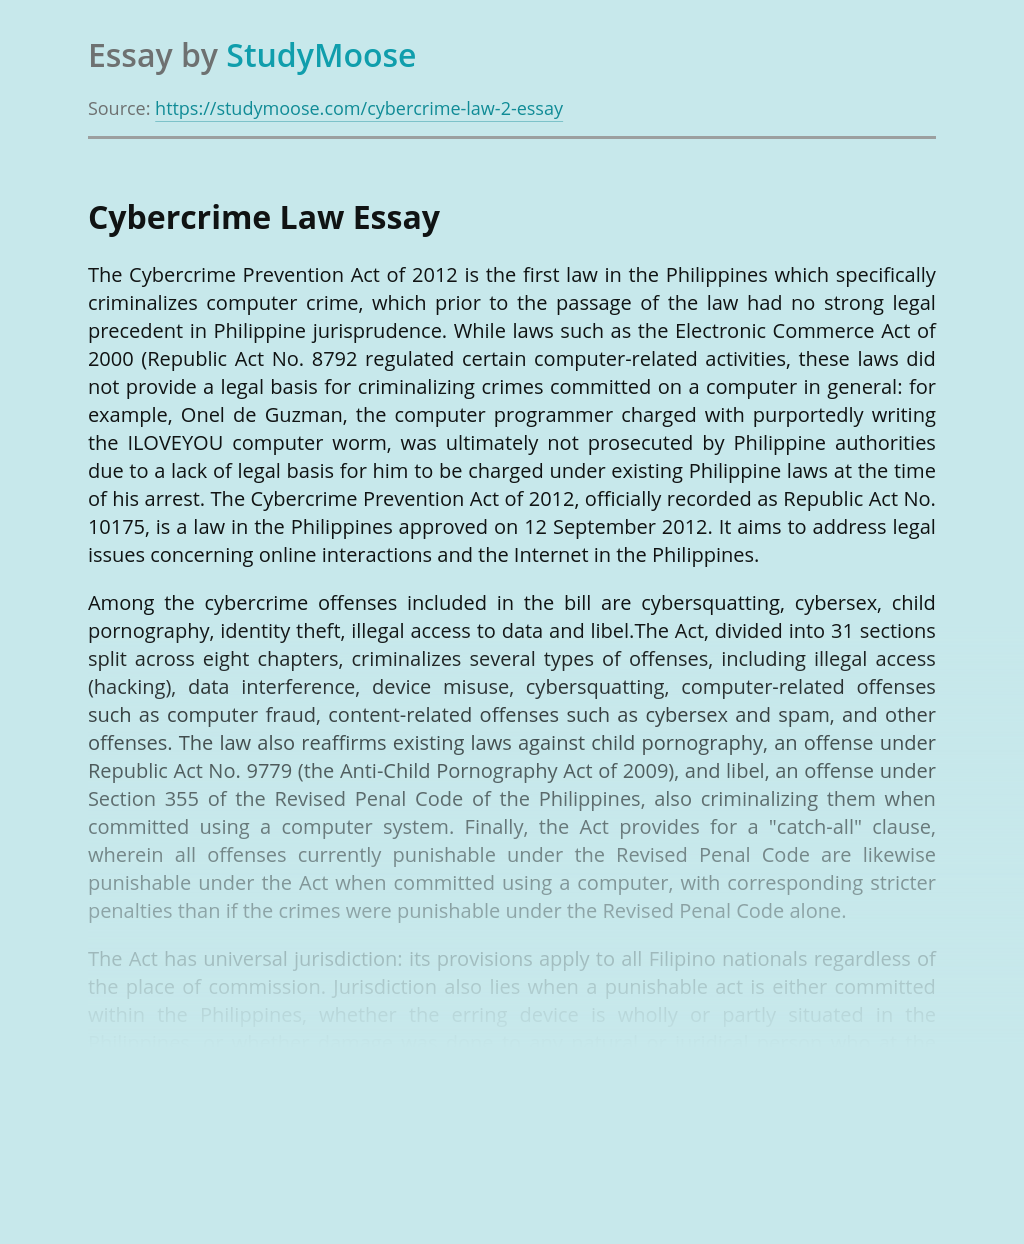 The Cybercrime Prevention Act of 2012